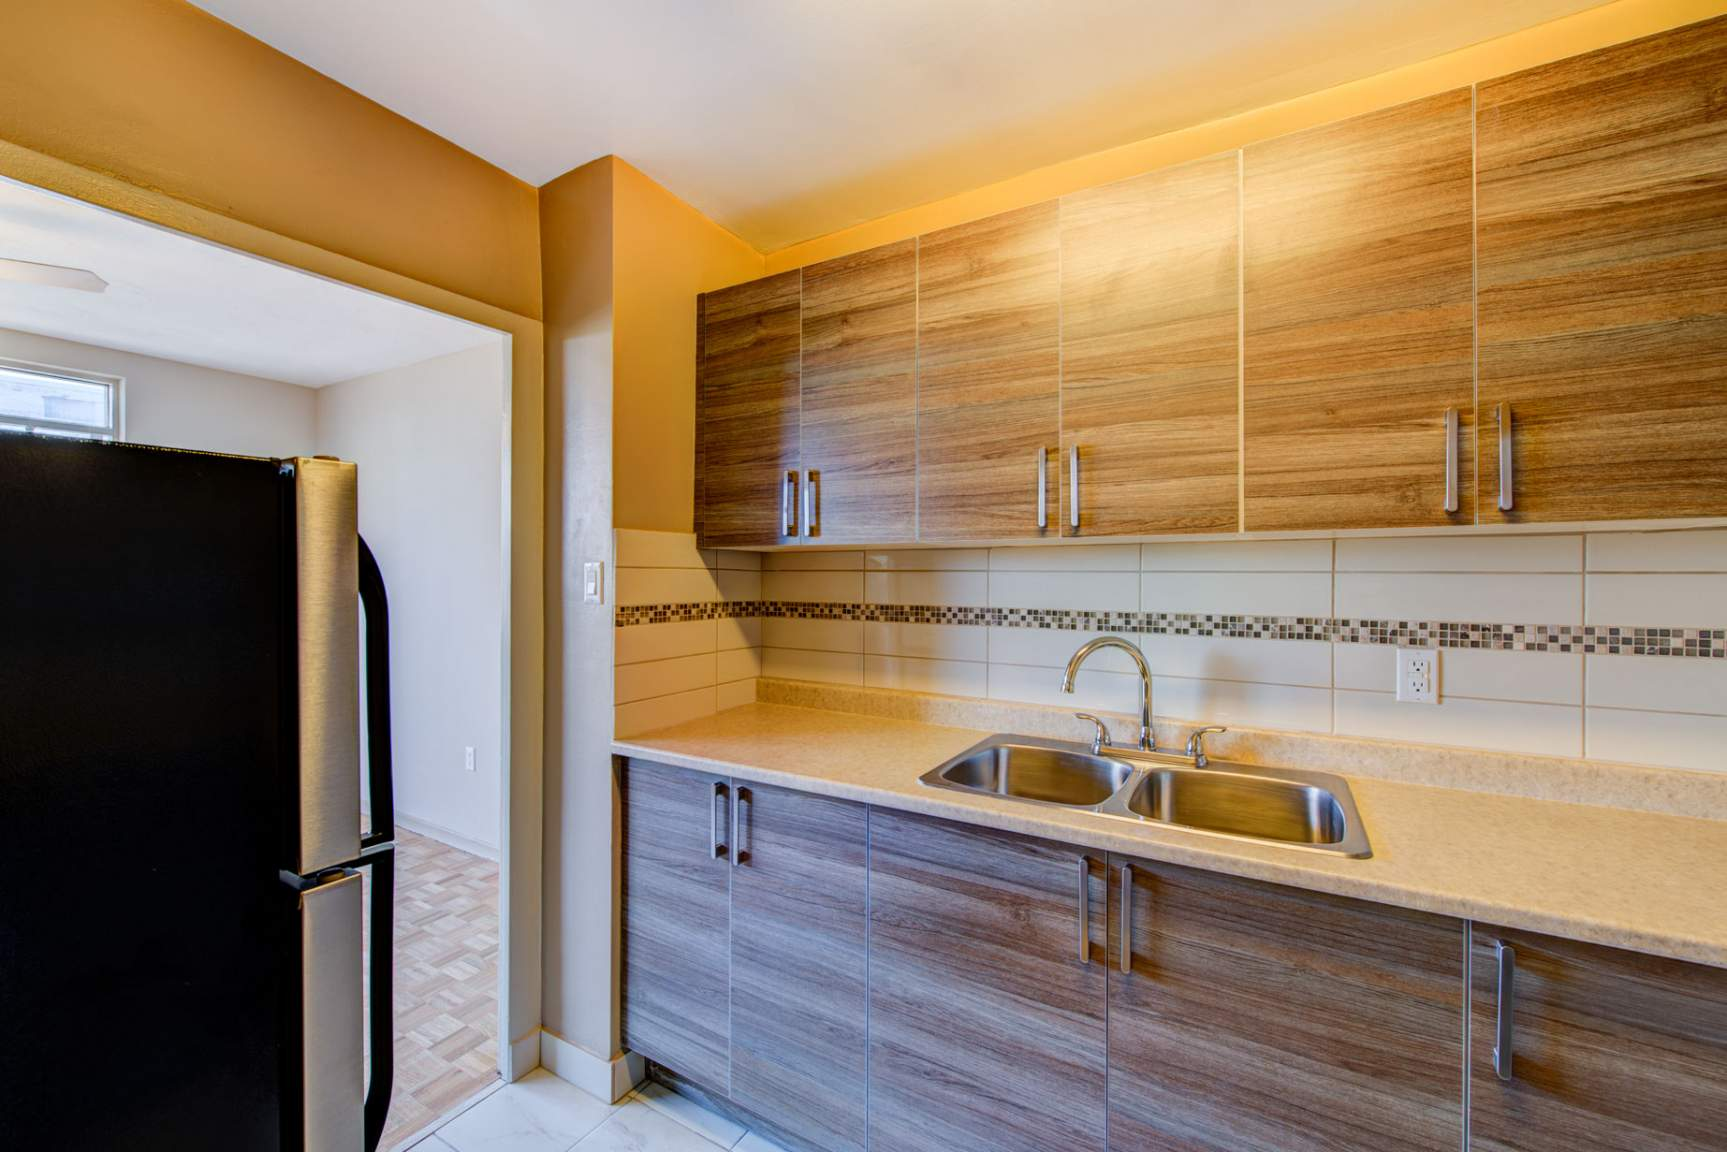 Studio / bachelor apartments for rent Mississauga at ...